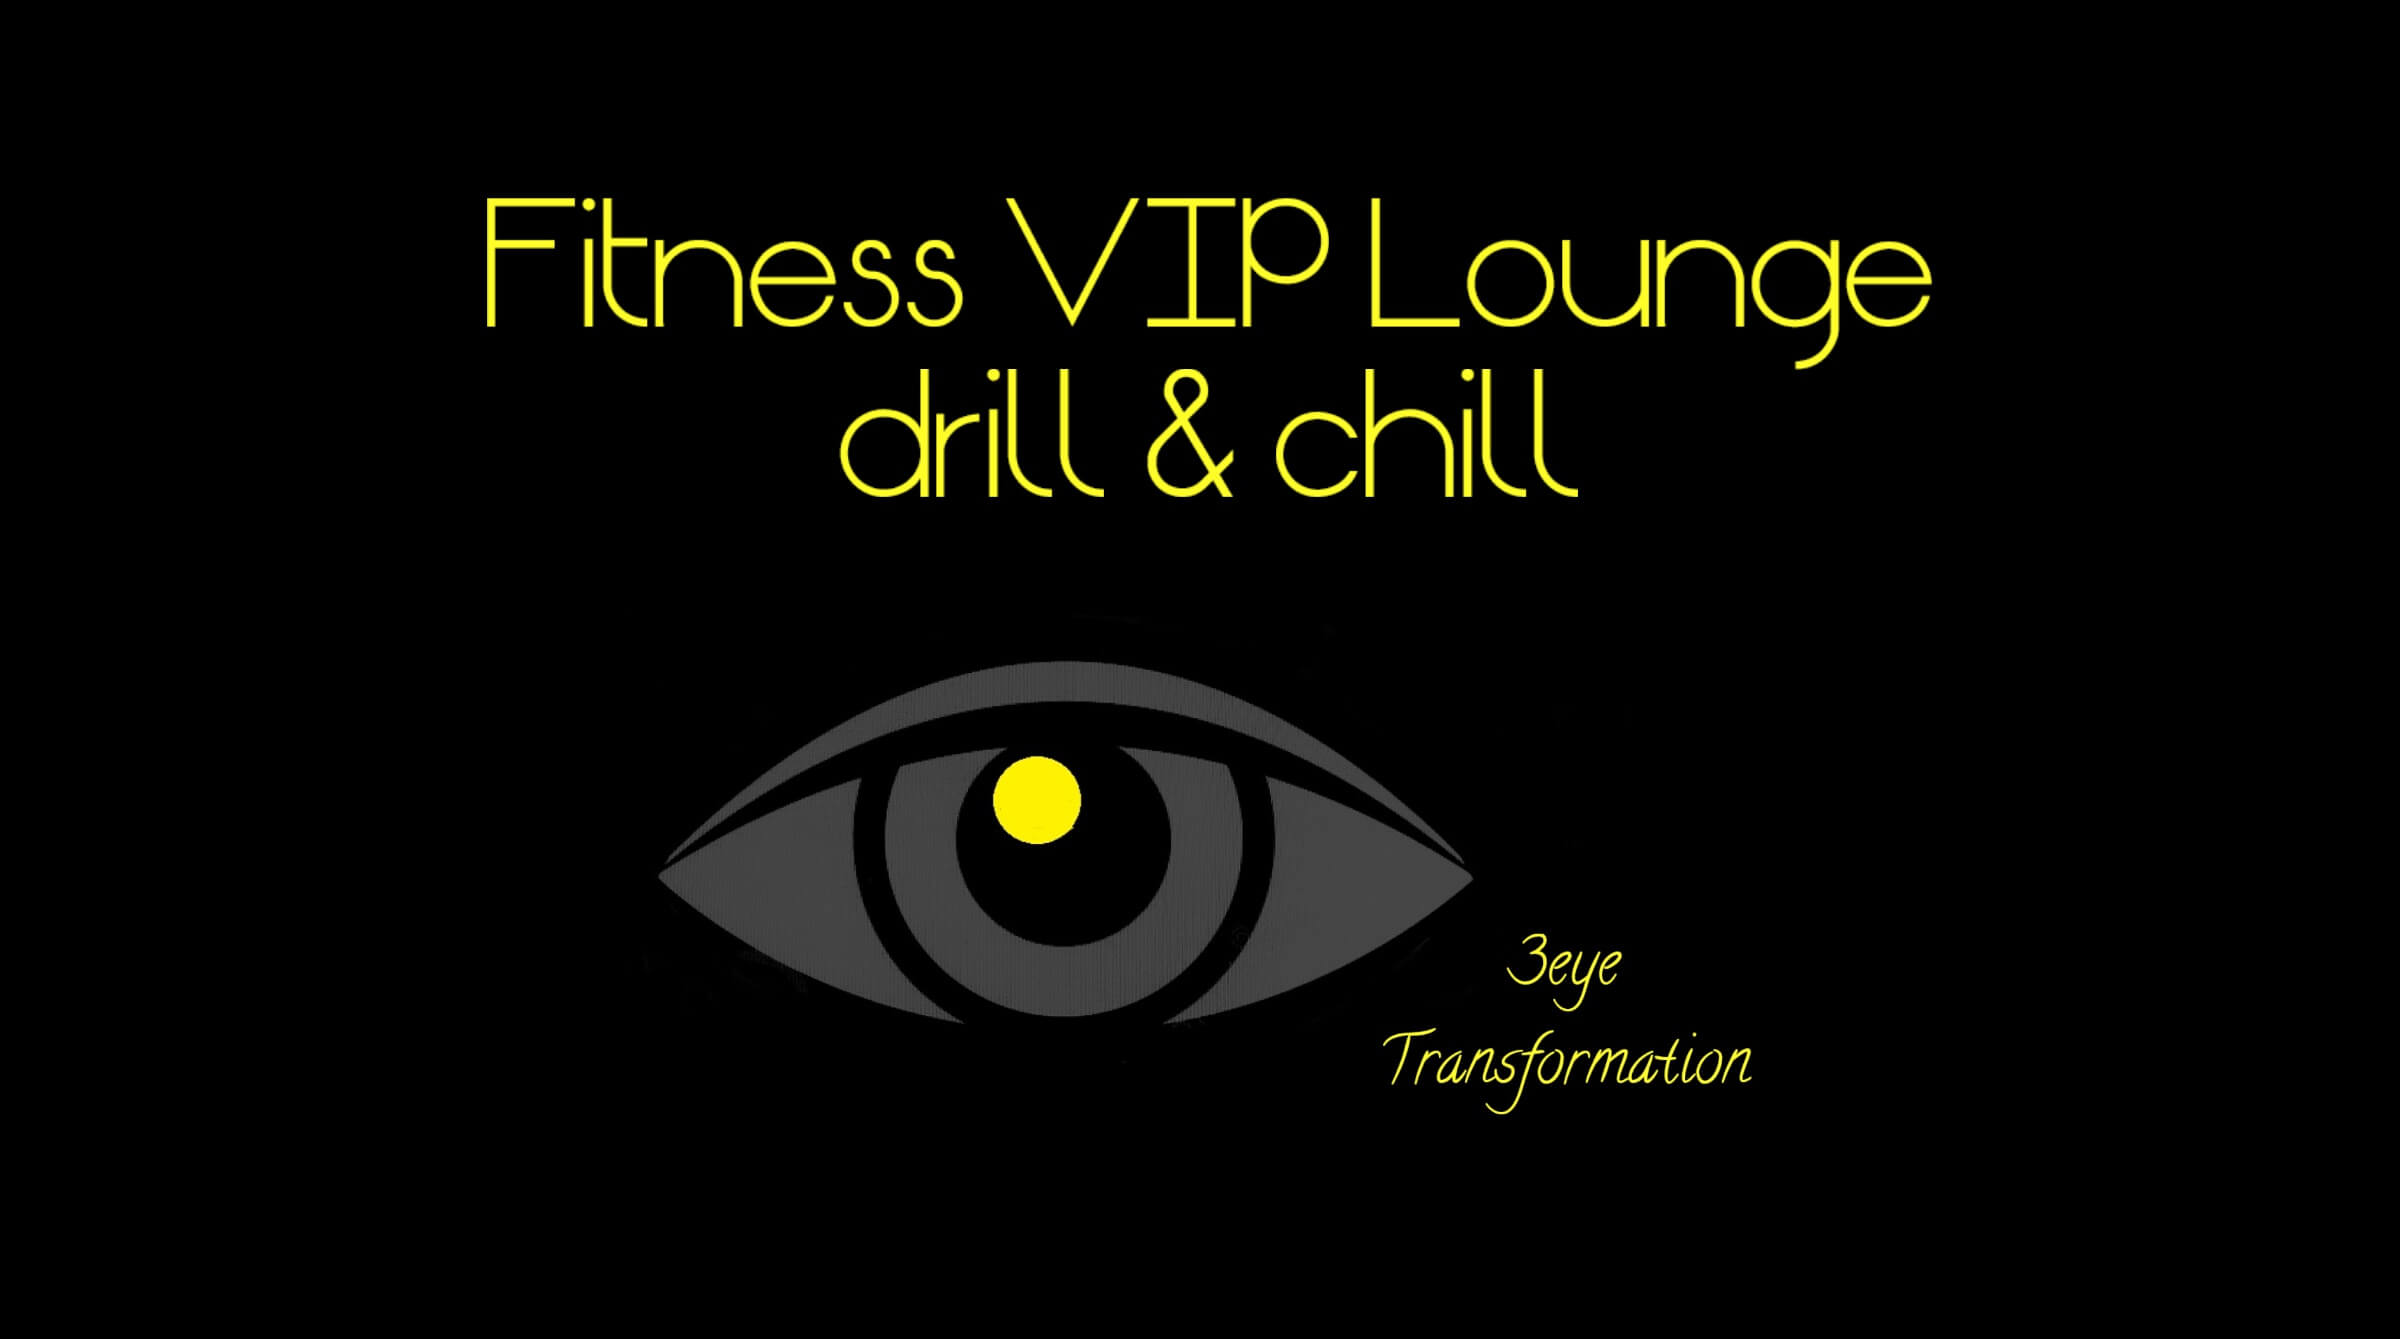 3eye Fitness VIP Lounge